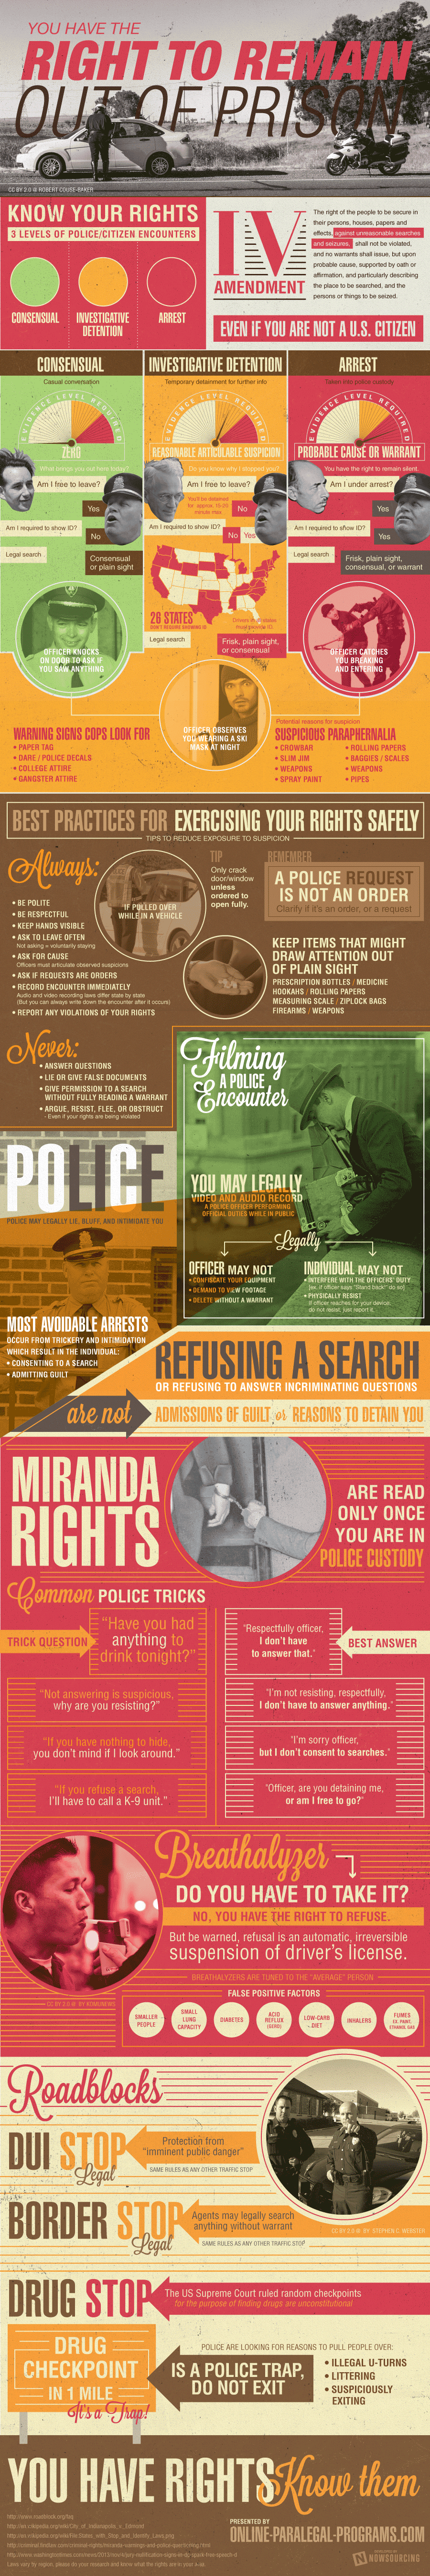 Knowing Your Rights: How to Hack the Legal System - #infographic